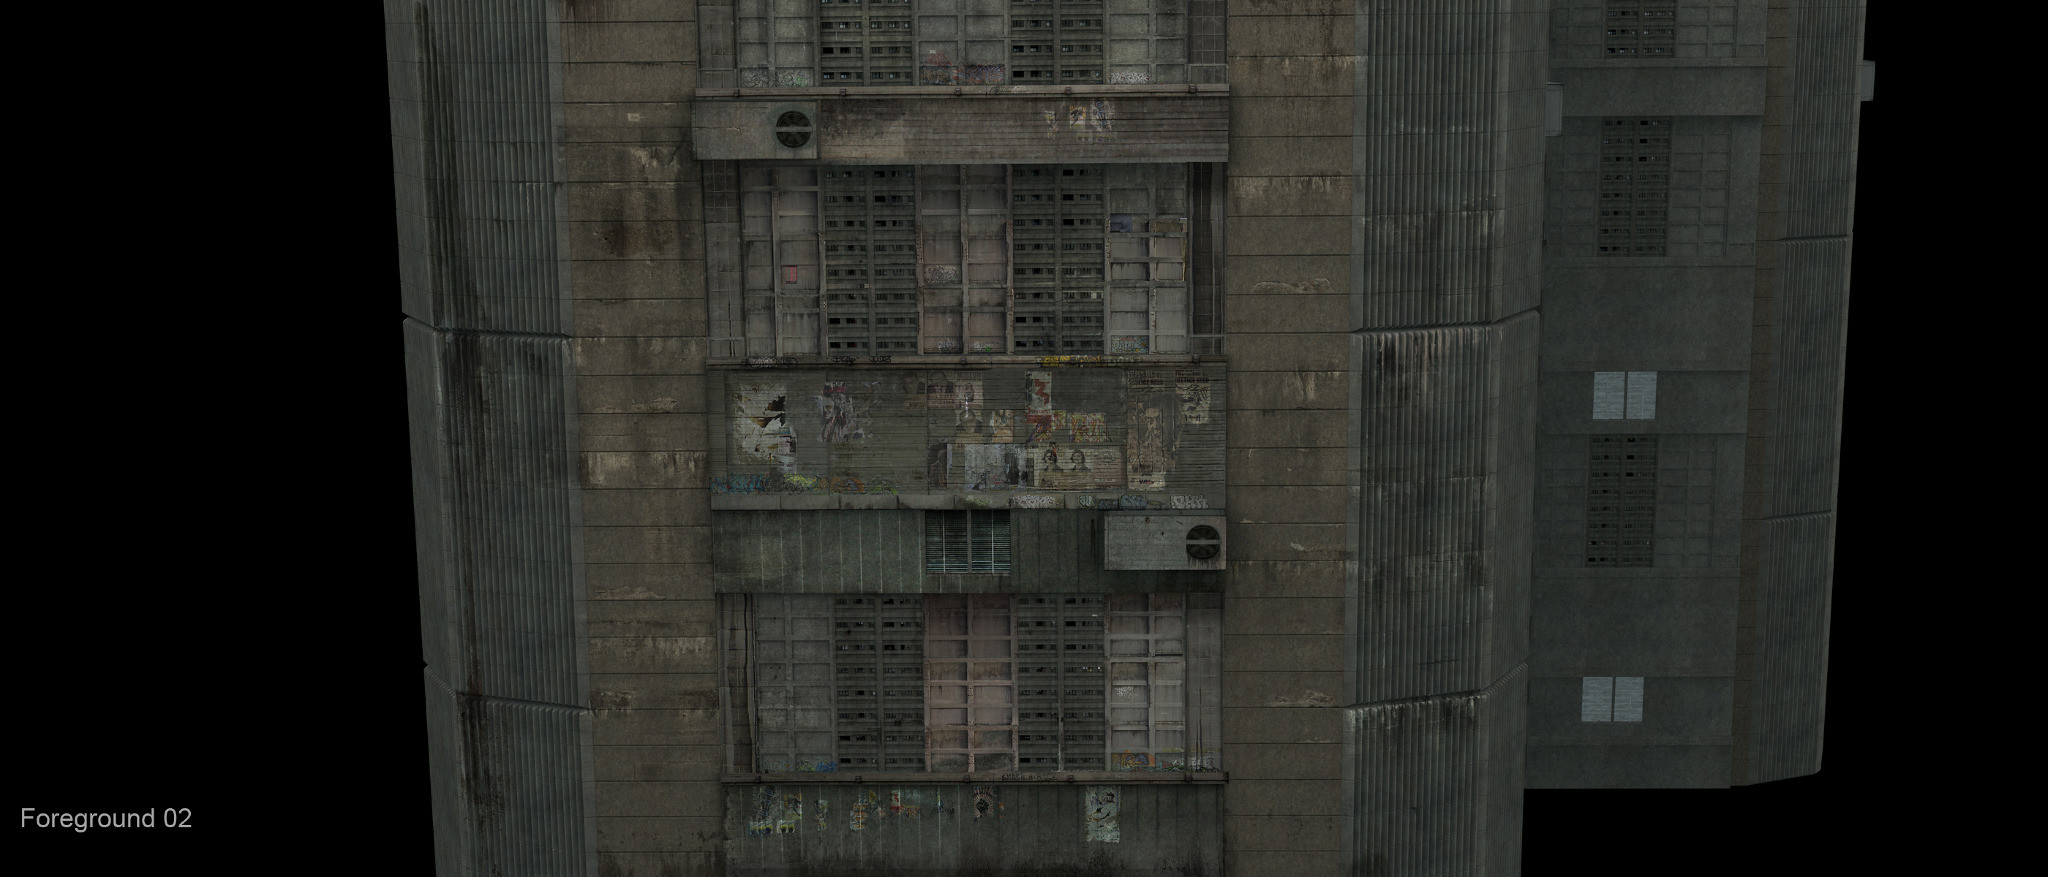 Matte painting of Foreground building used in panning shot